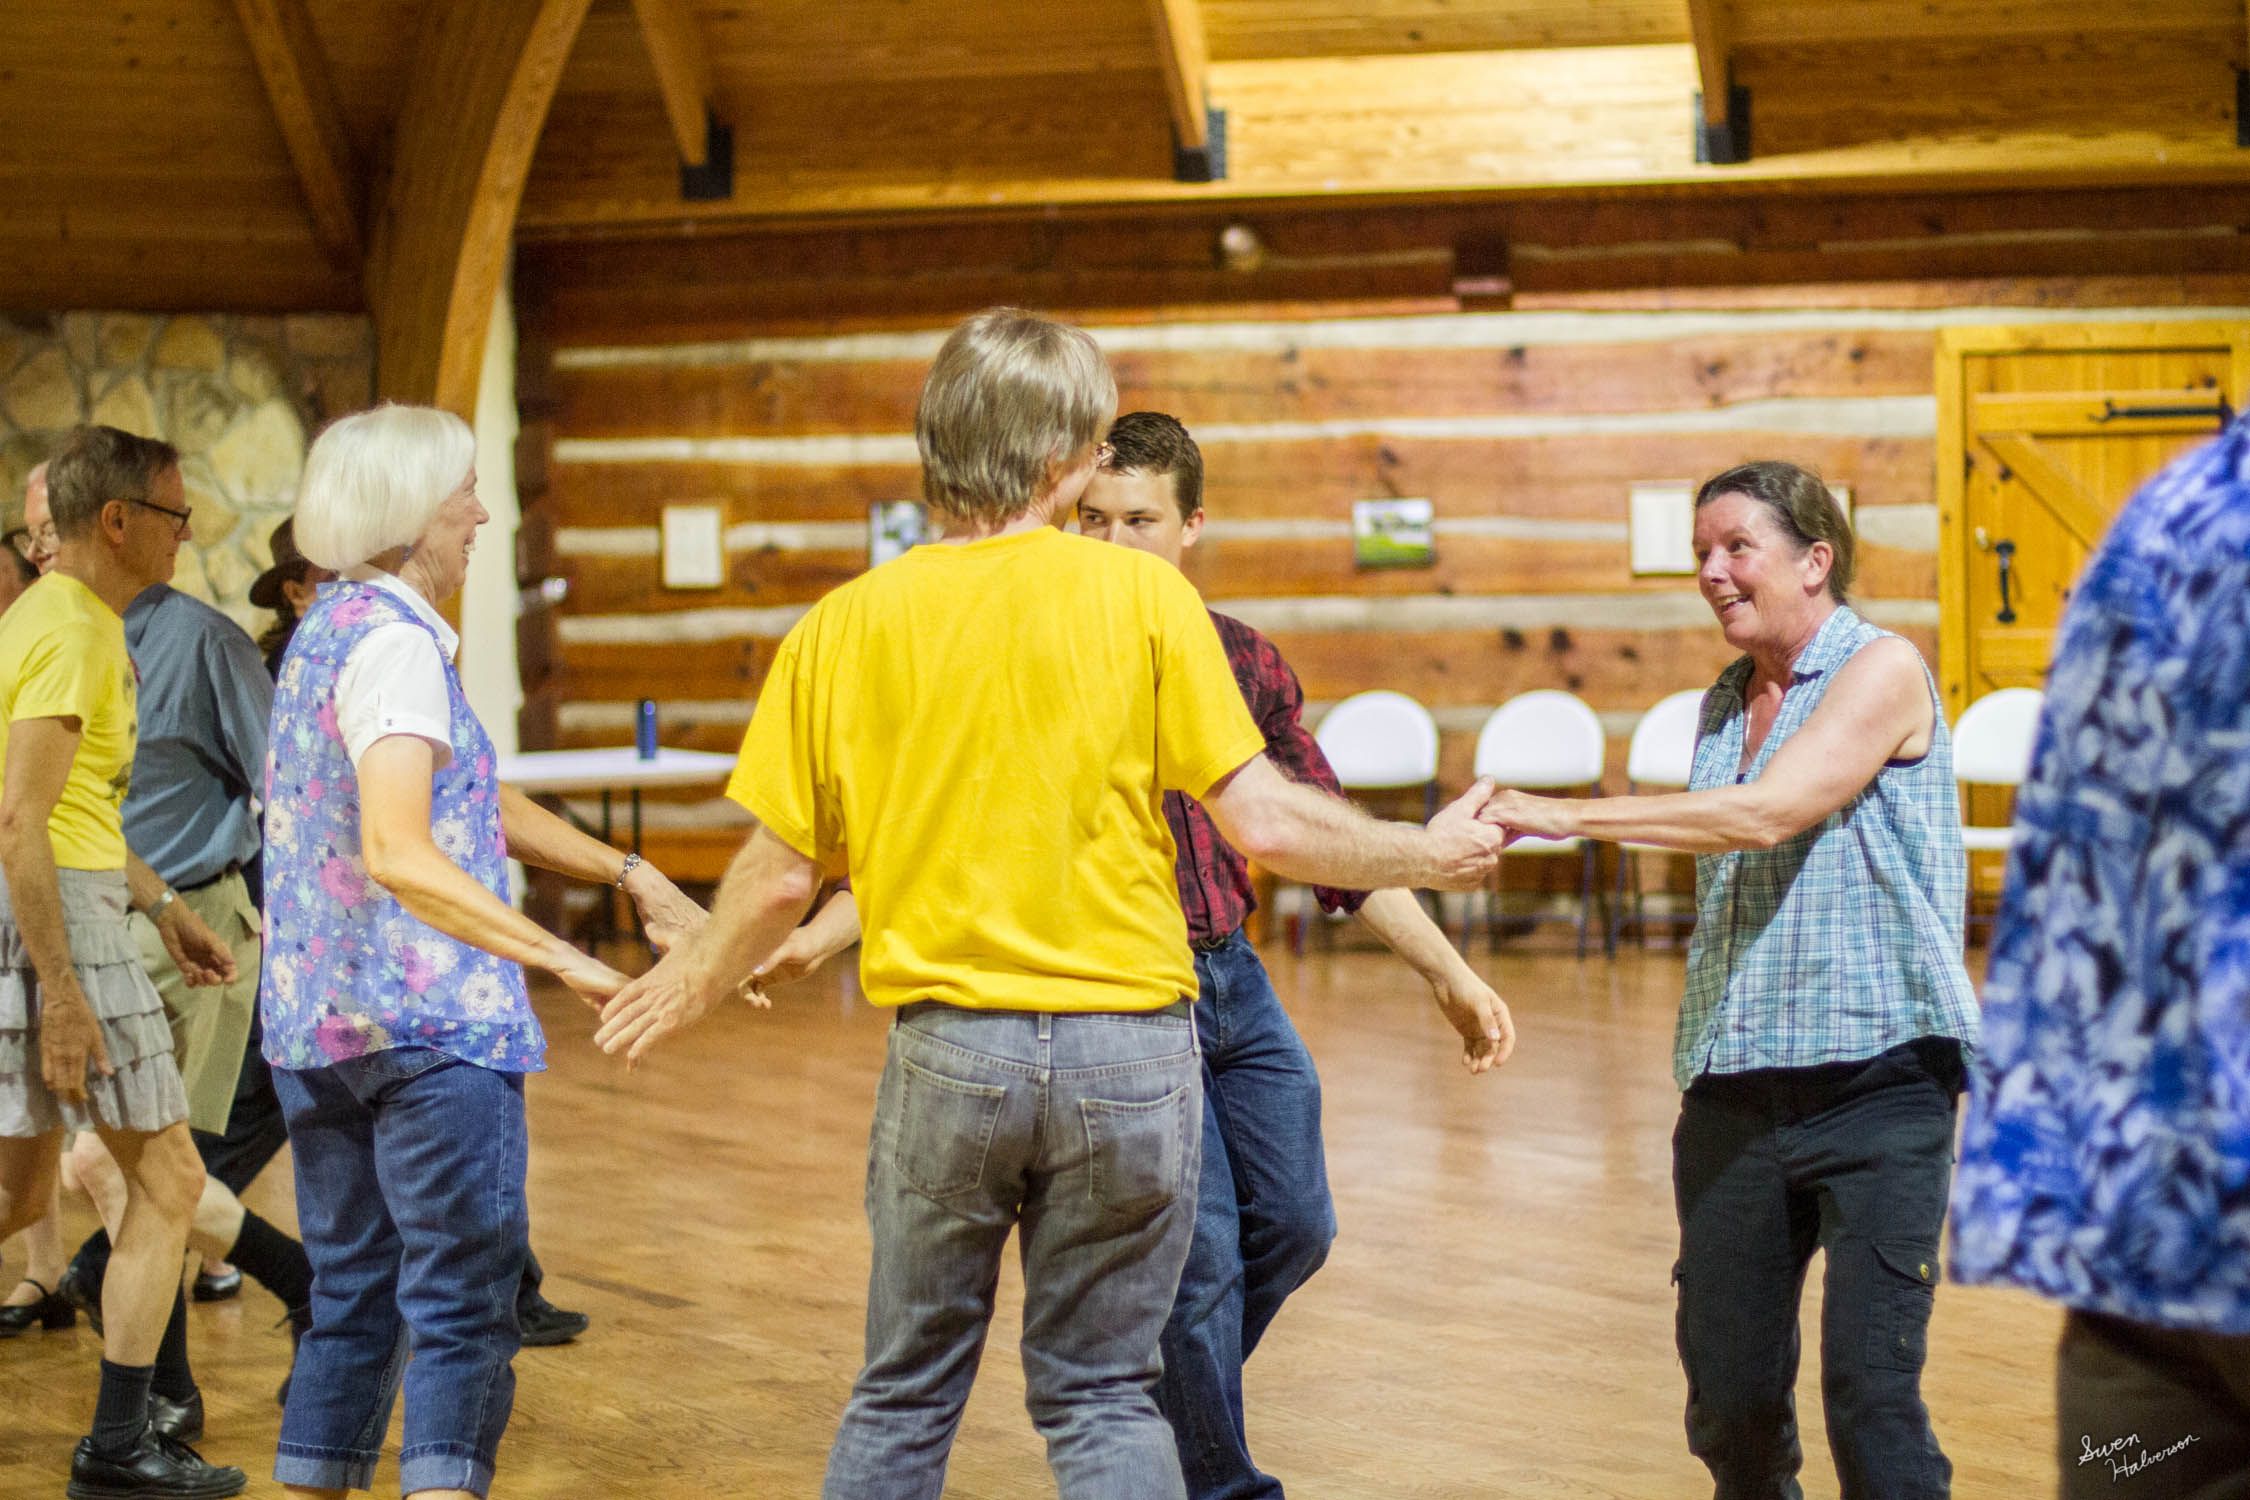 Contra dancing in Berea-046.jpg